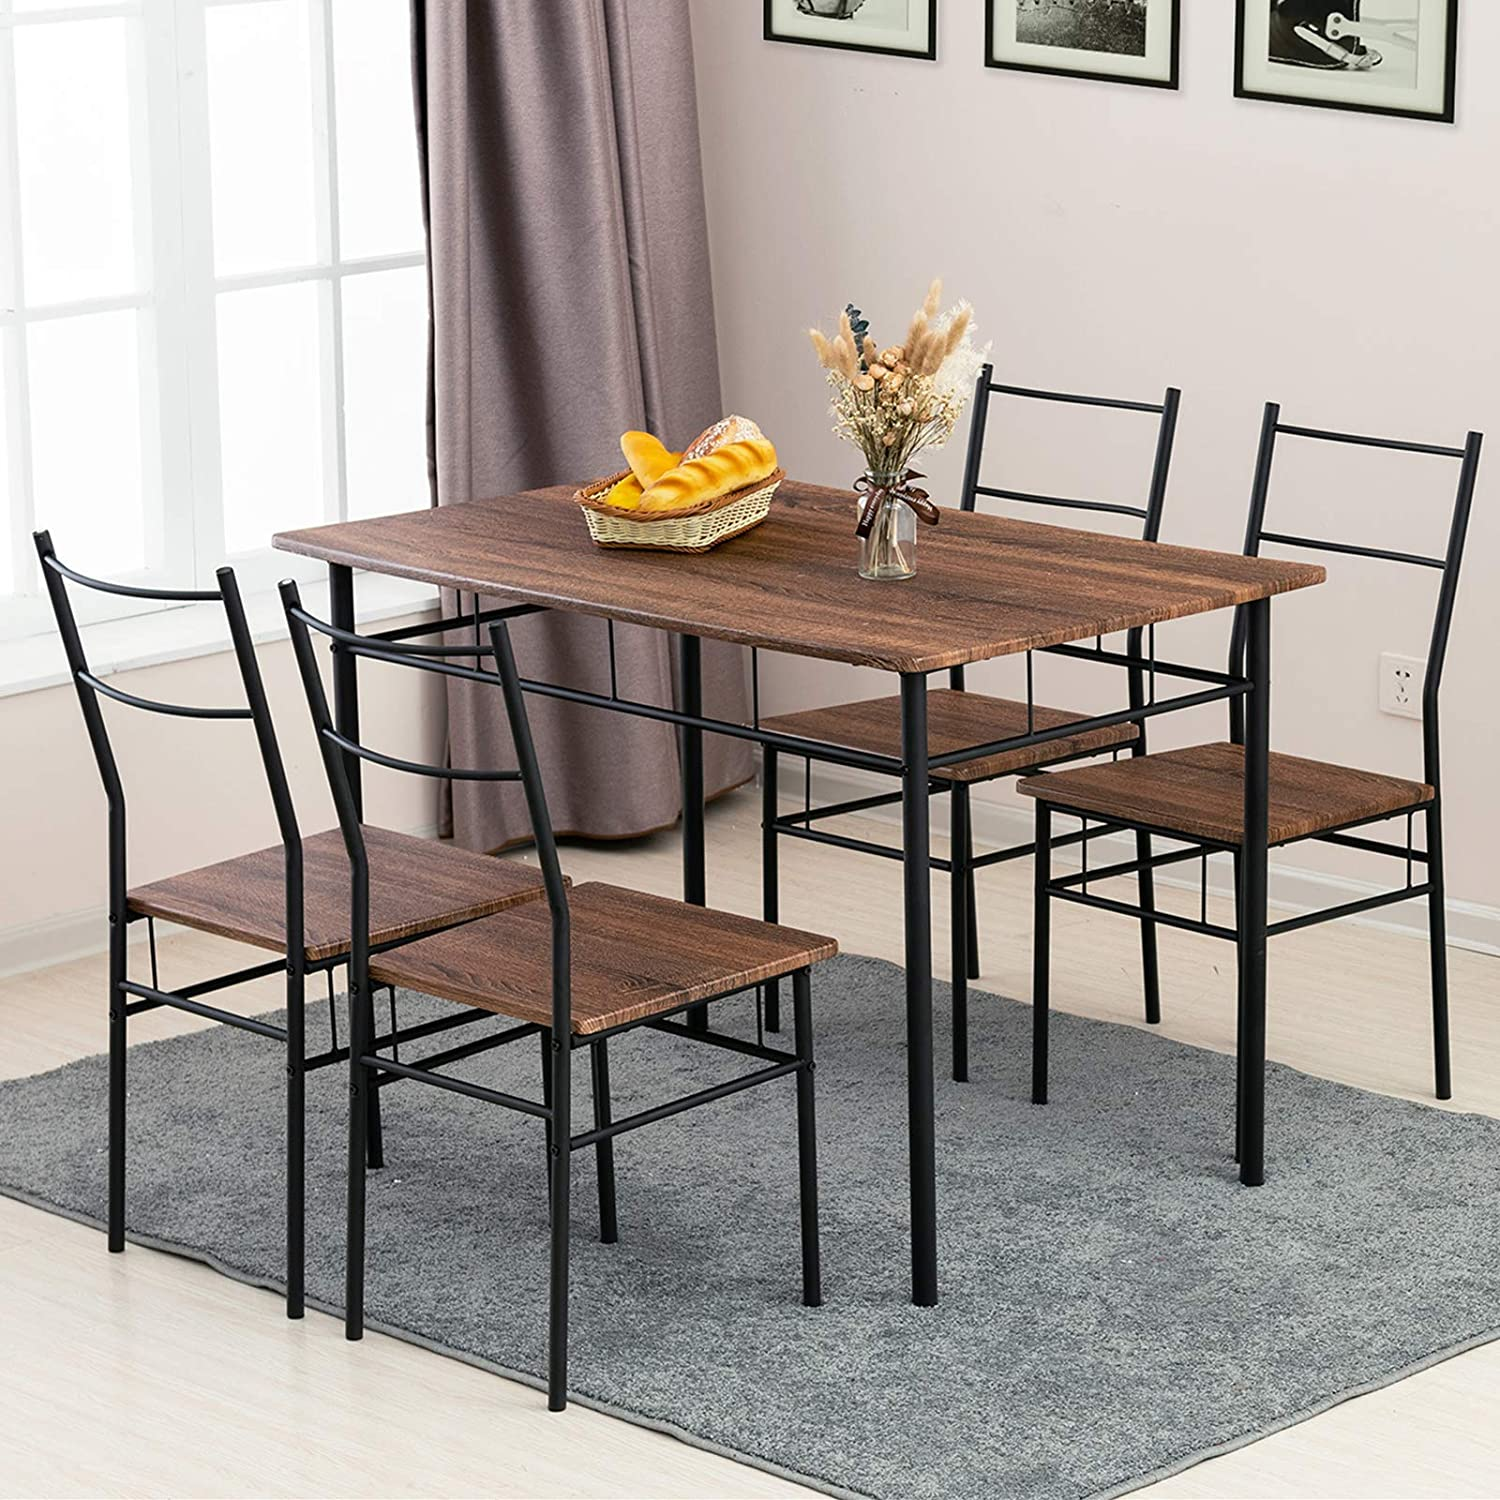 mecor 9 Piece Dining Table Set, Vintage Wood Tabletop Kitchen Table w/ 9  Chairs with Metal Frame, Brown